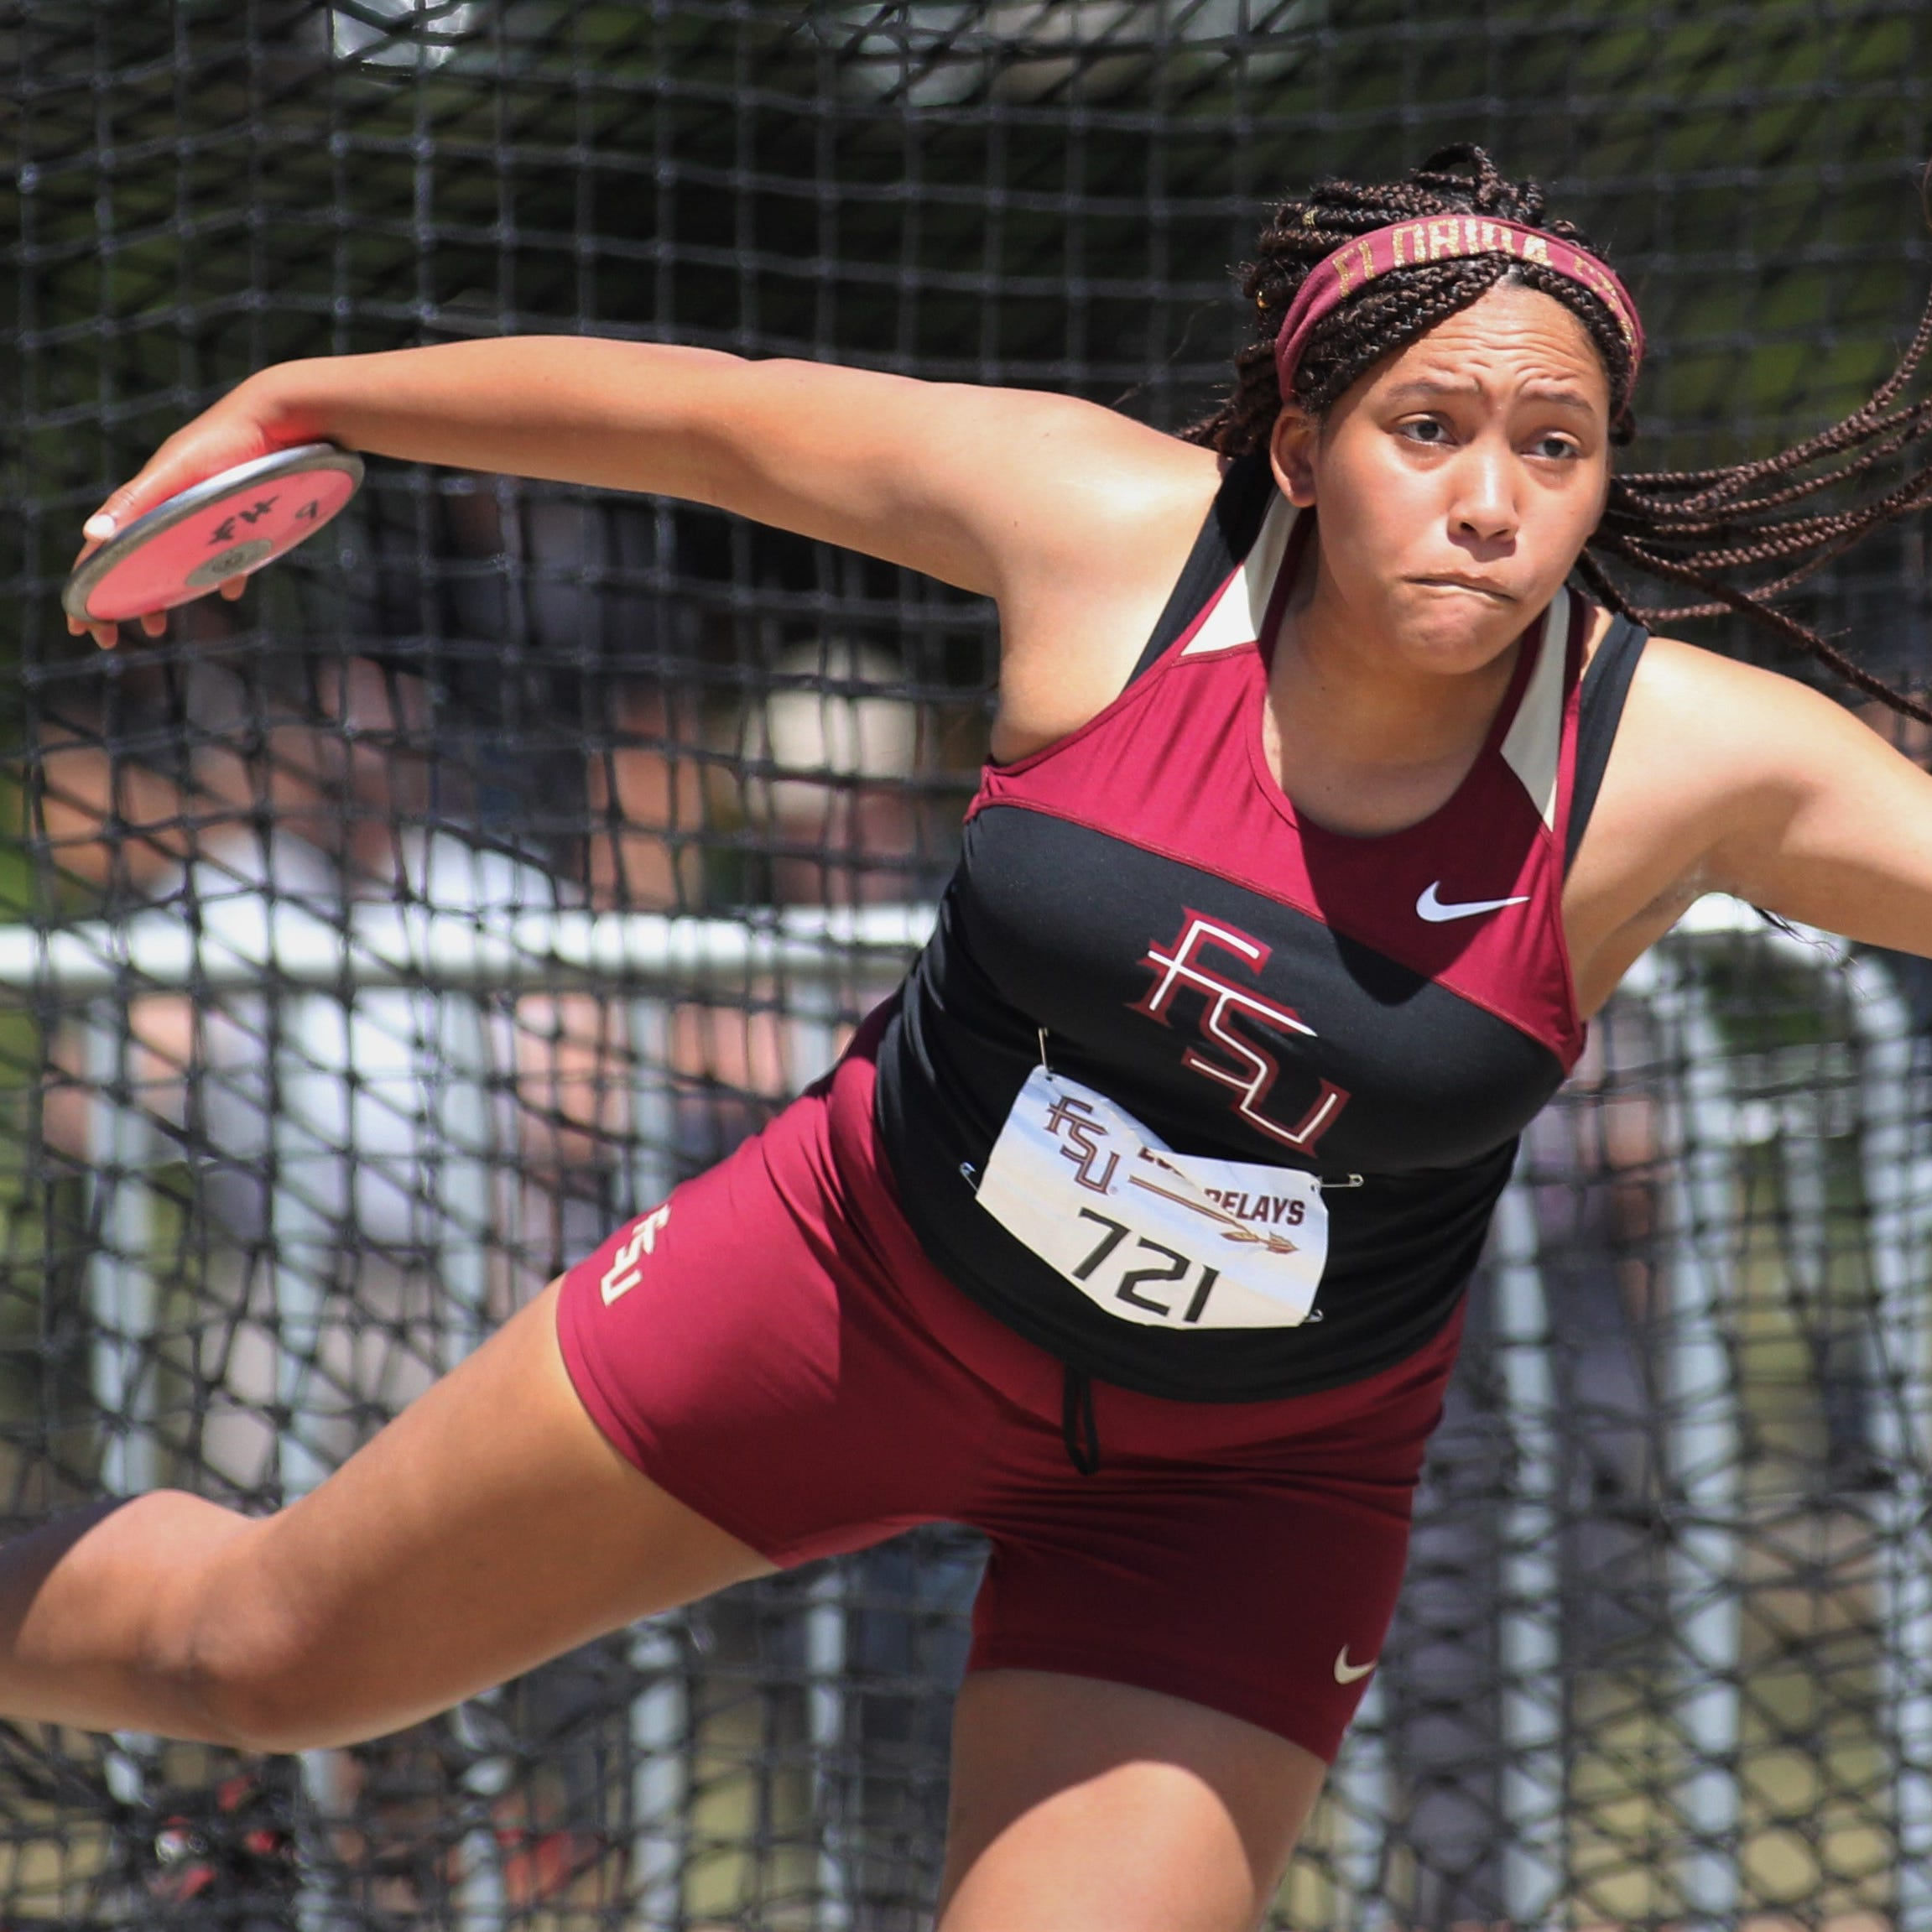 FSU Relays: Florida High's Stallworth, Chiles' distance crew test themselves